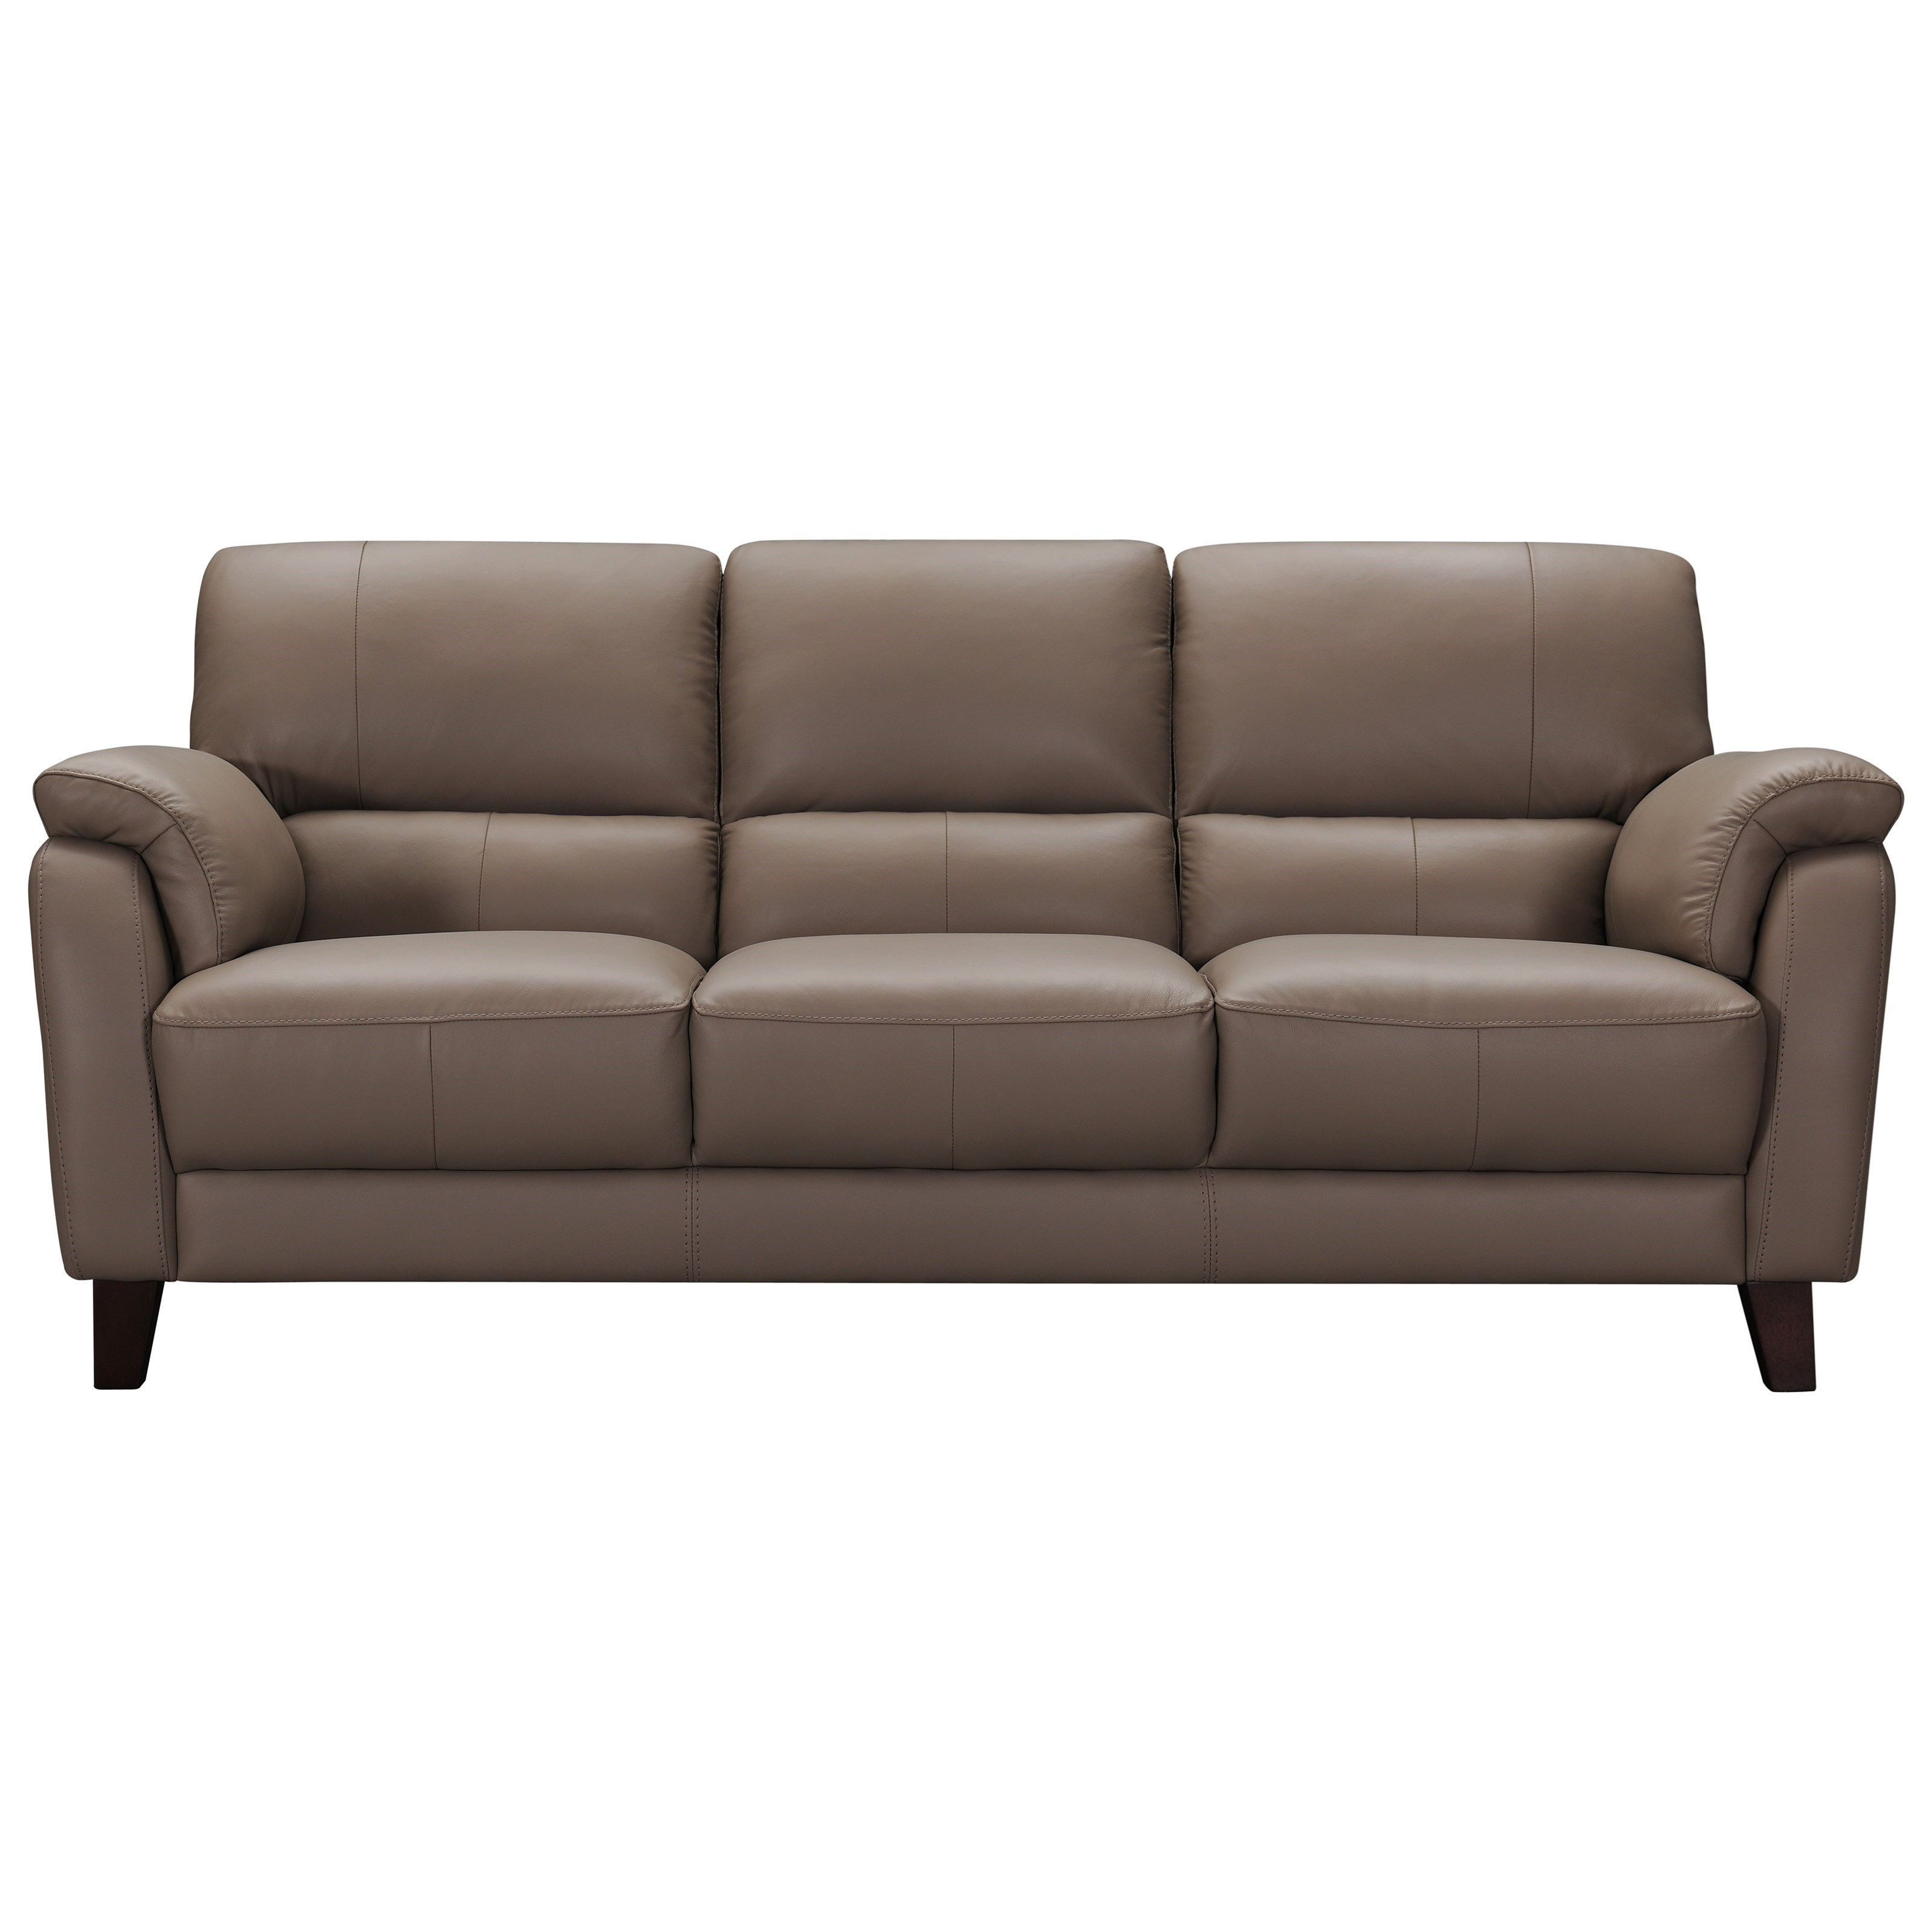 31933 Sofa by Violino at Furniture Superstore - Rochester, MN